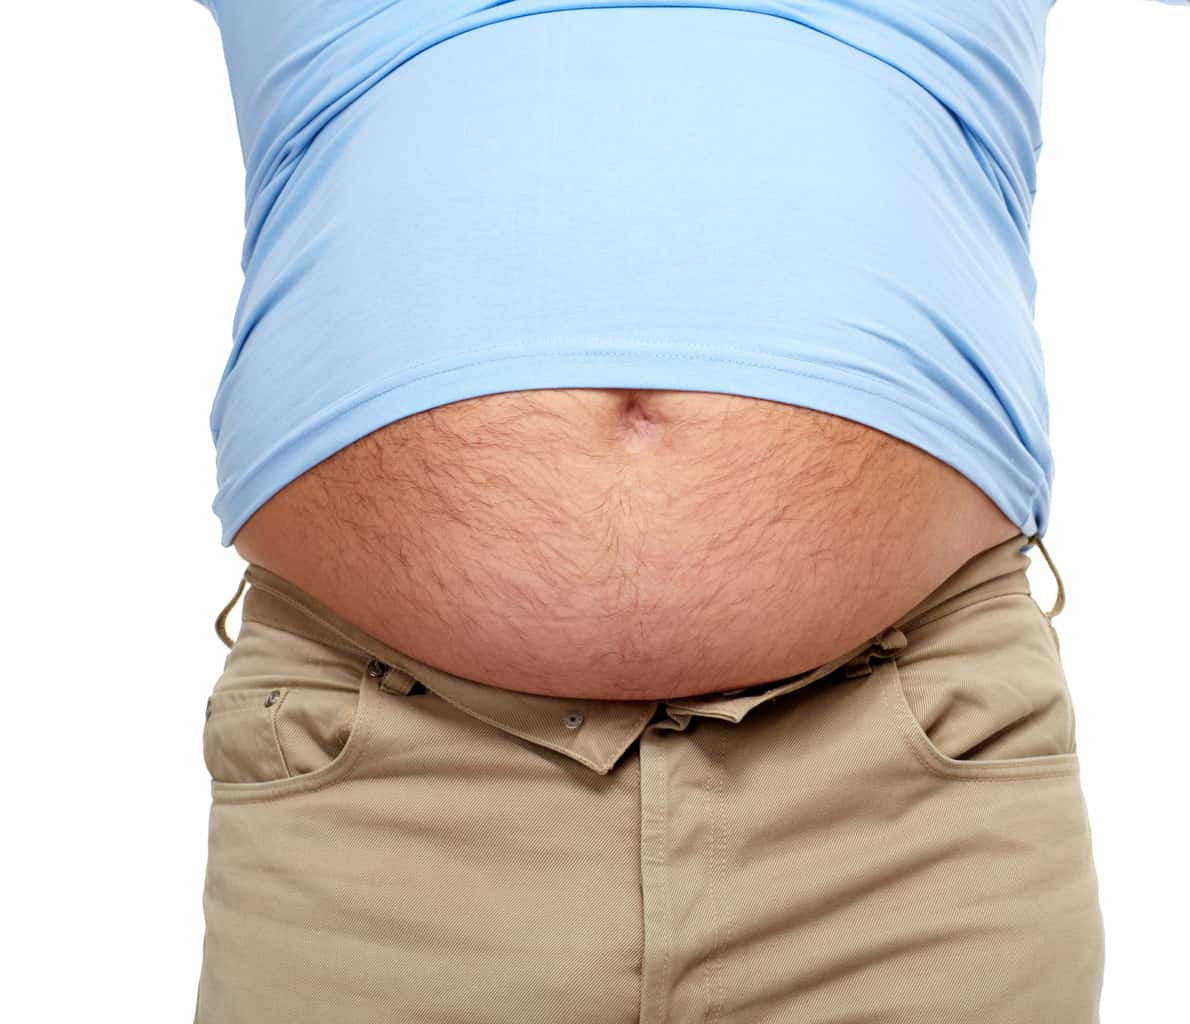 Use Vitamin D To Lose Belly Fat